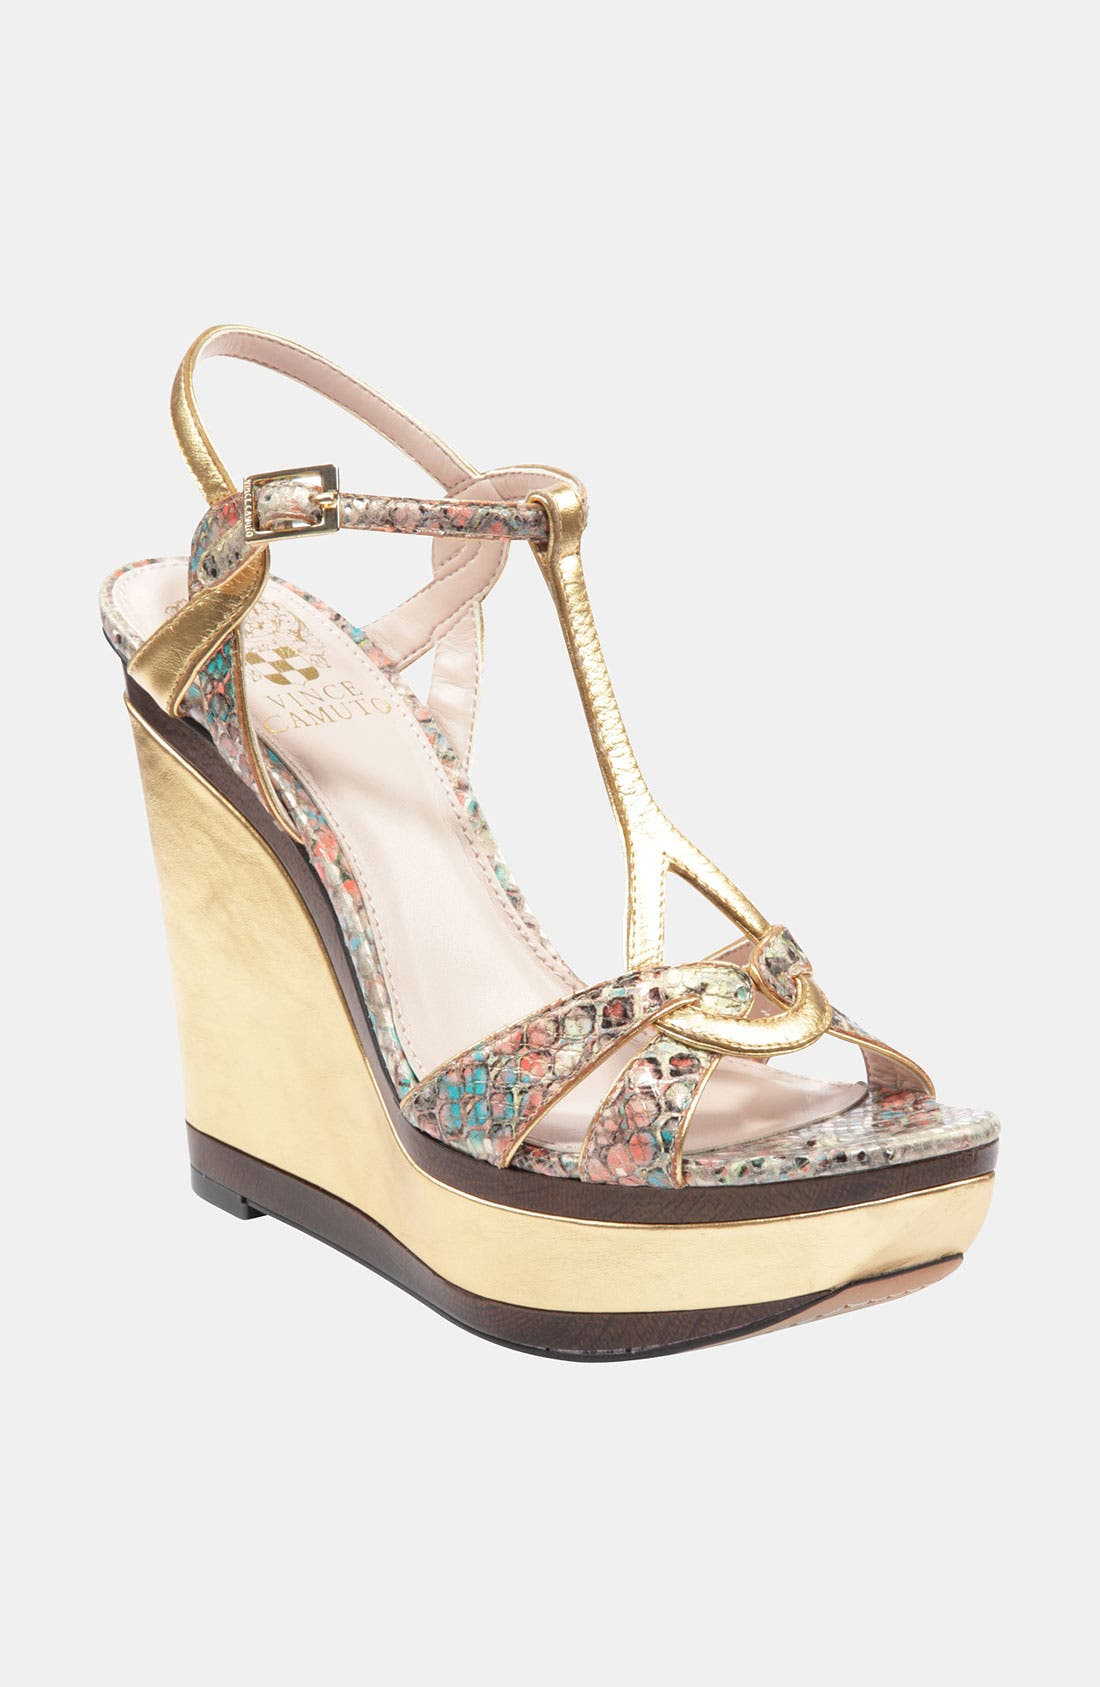 Alternate Image 1 Selected - Vince Camuto 'Casidy' Wedge Sandal (Online Exclusive)